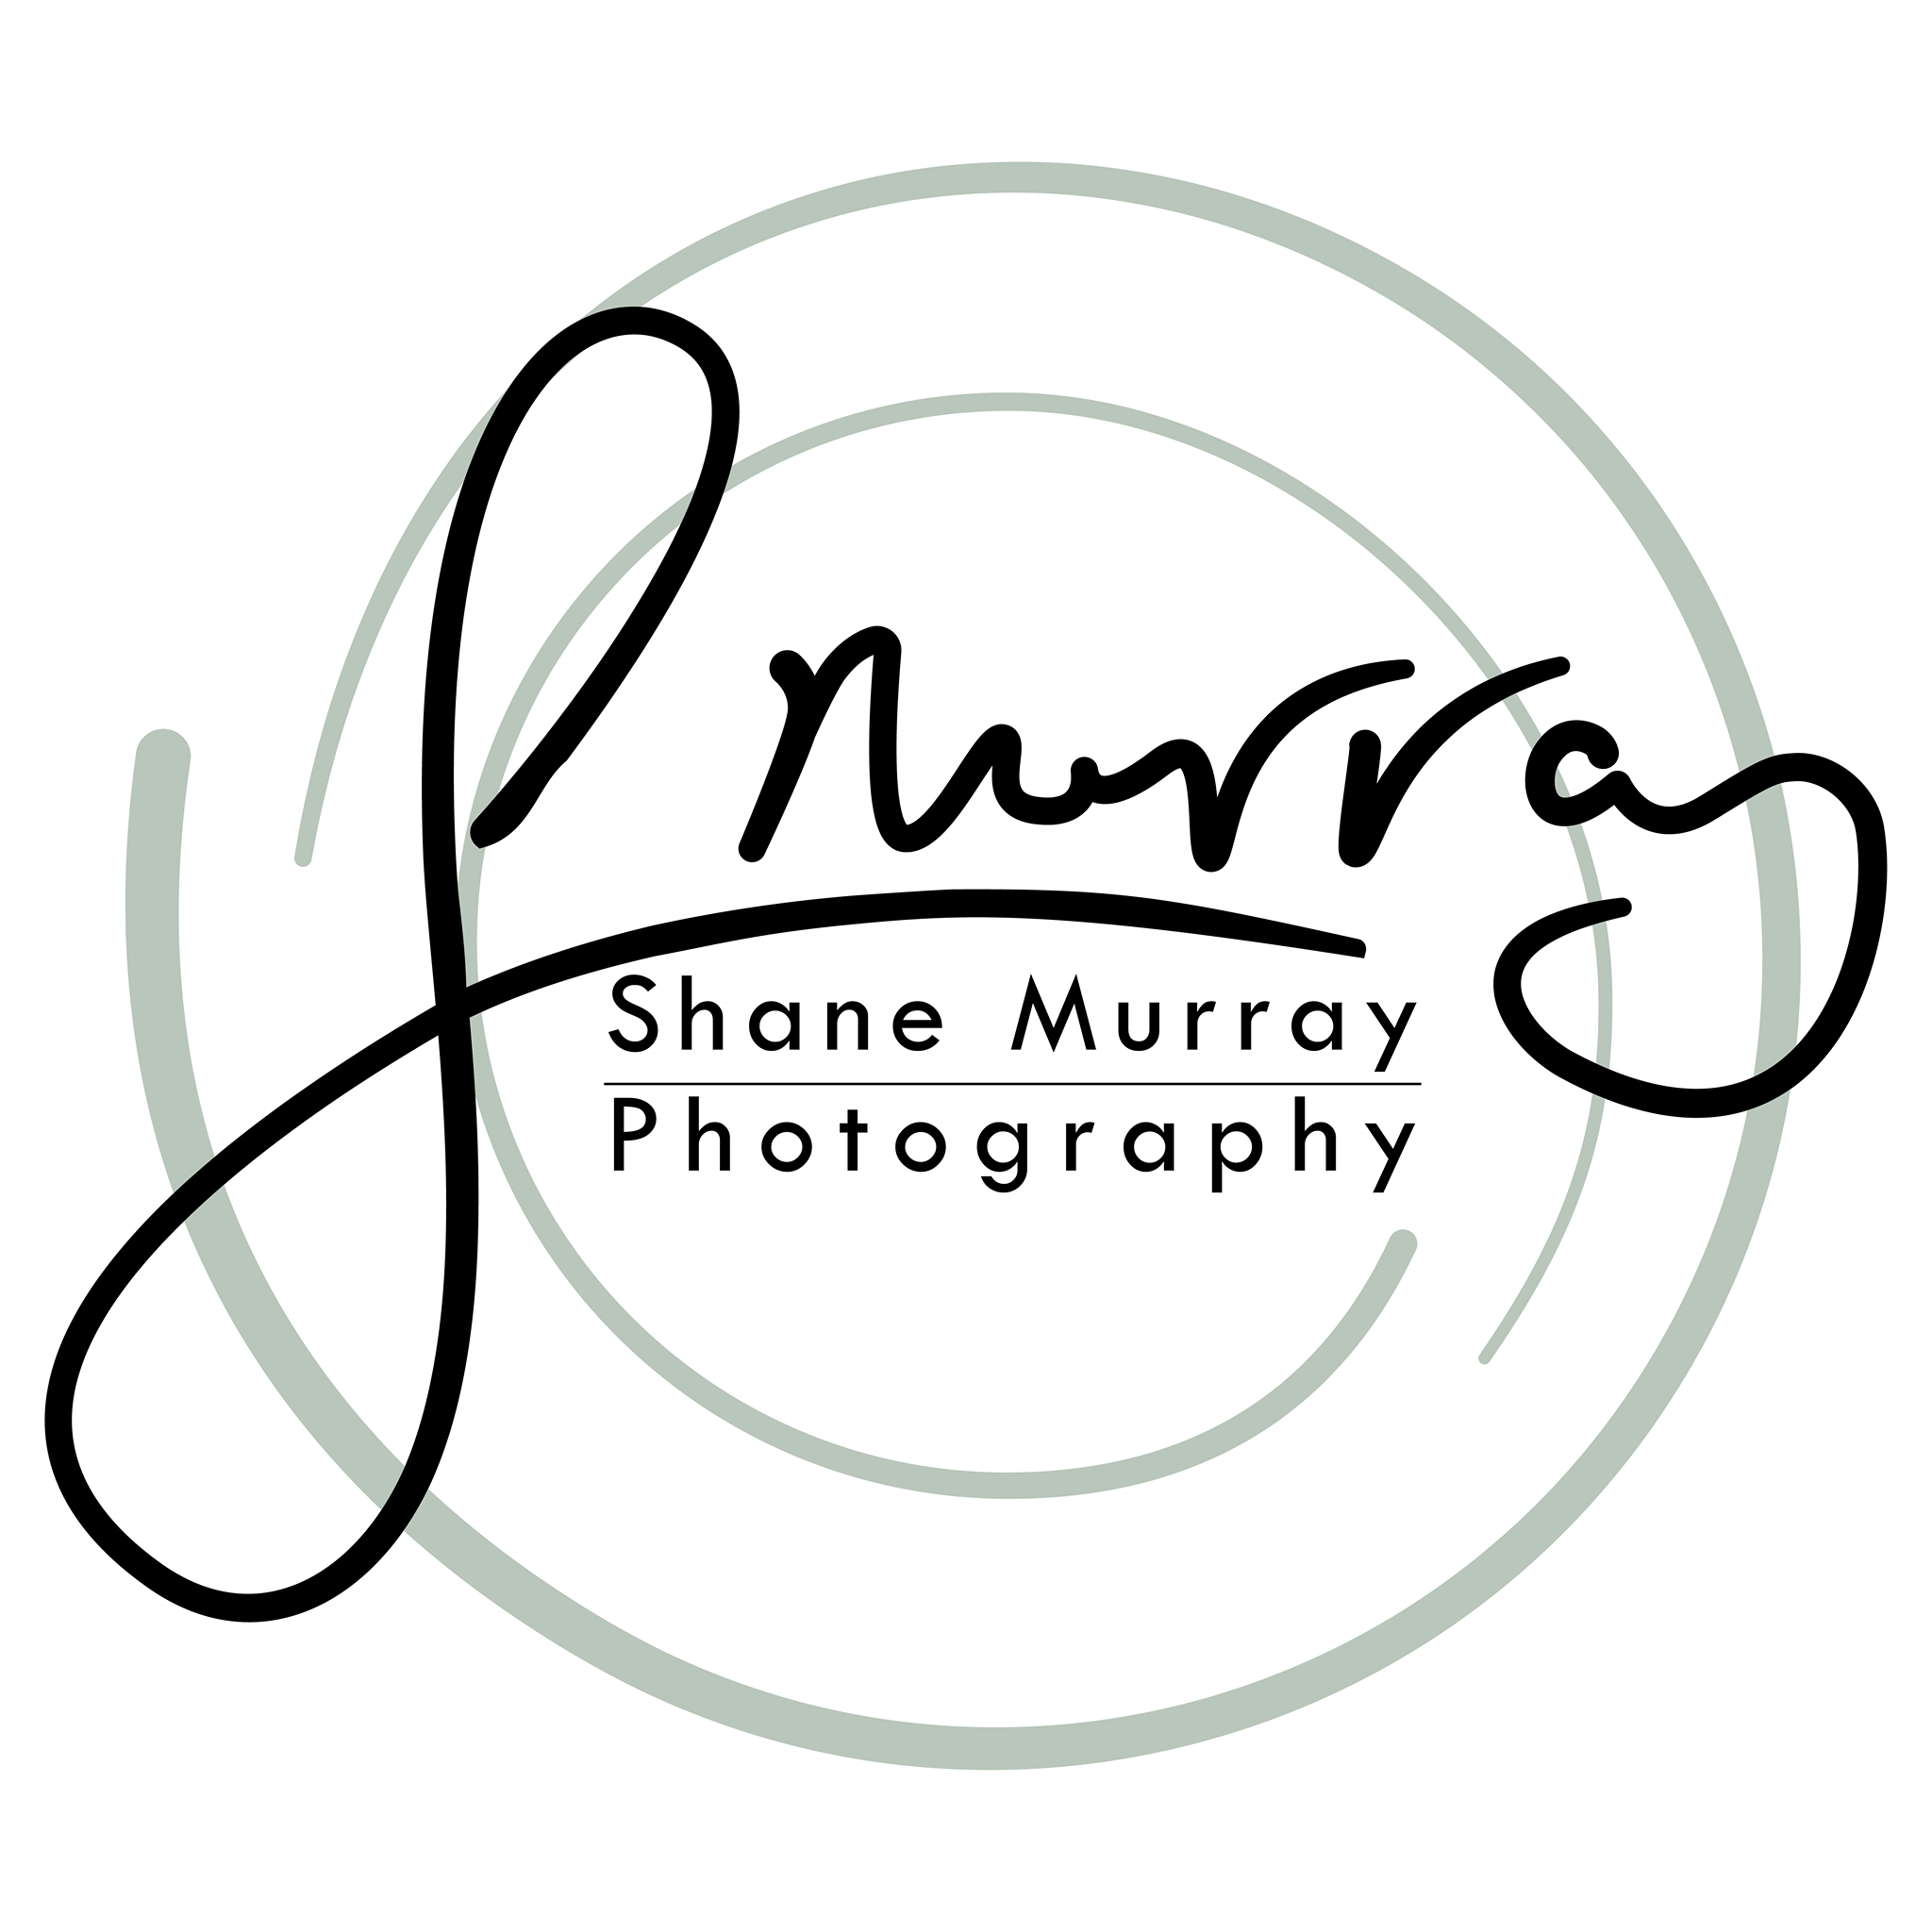 Shane Murray